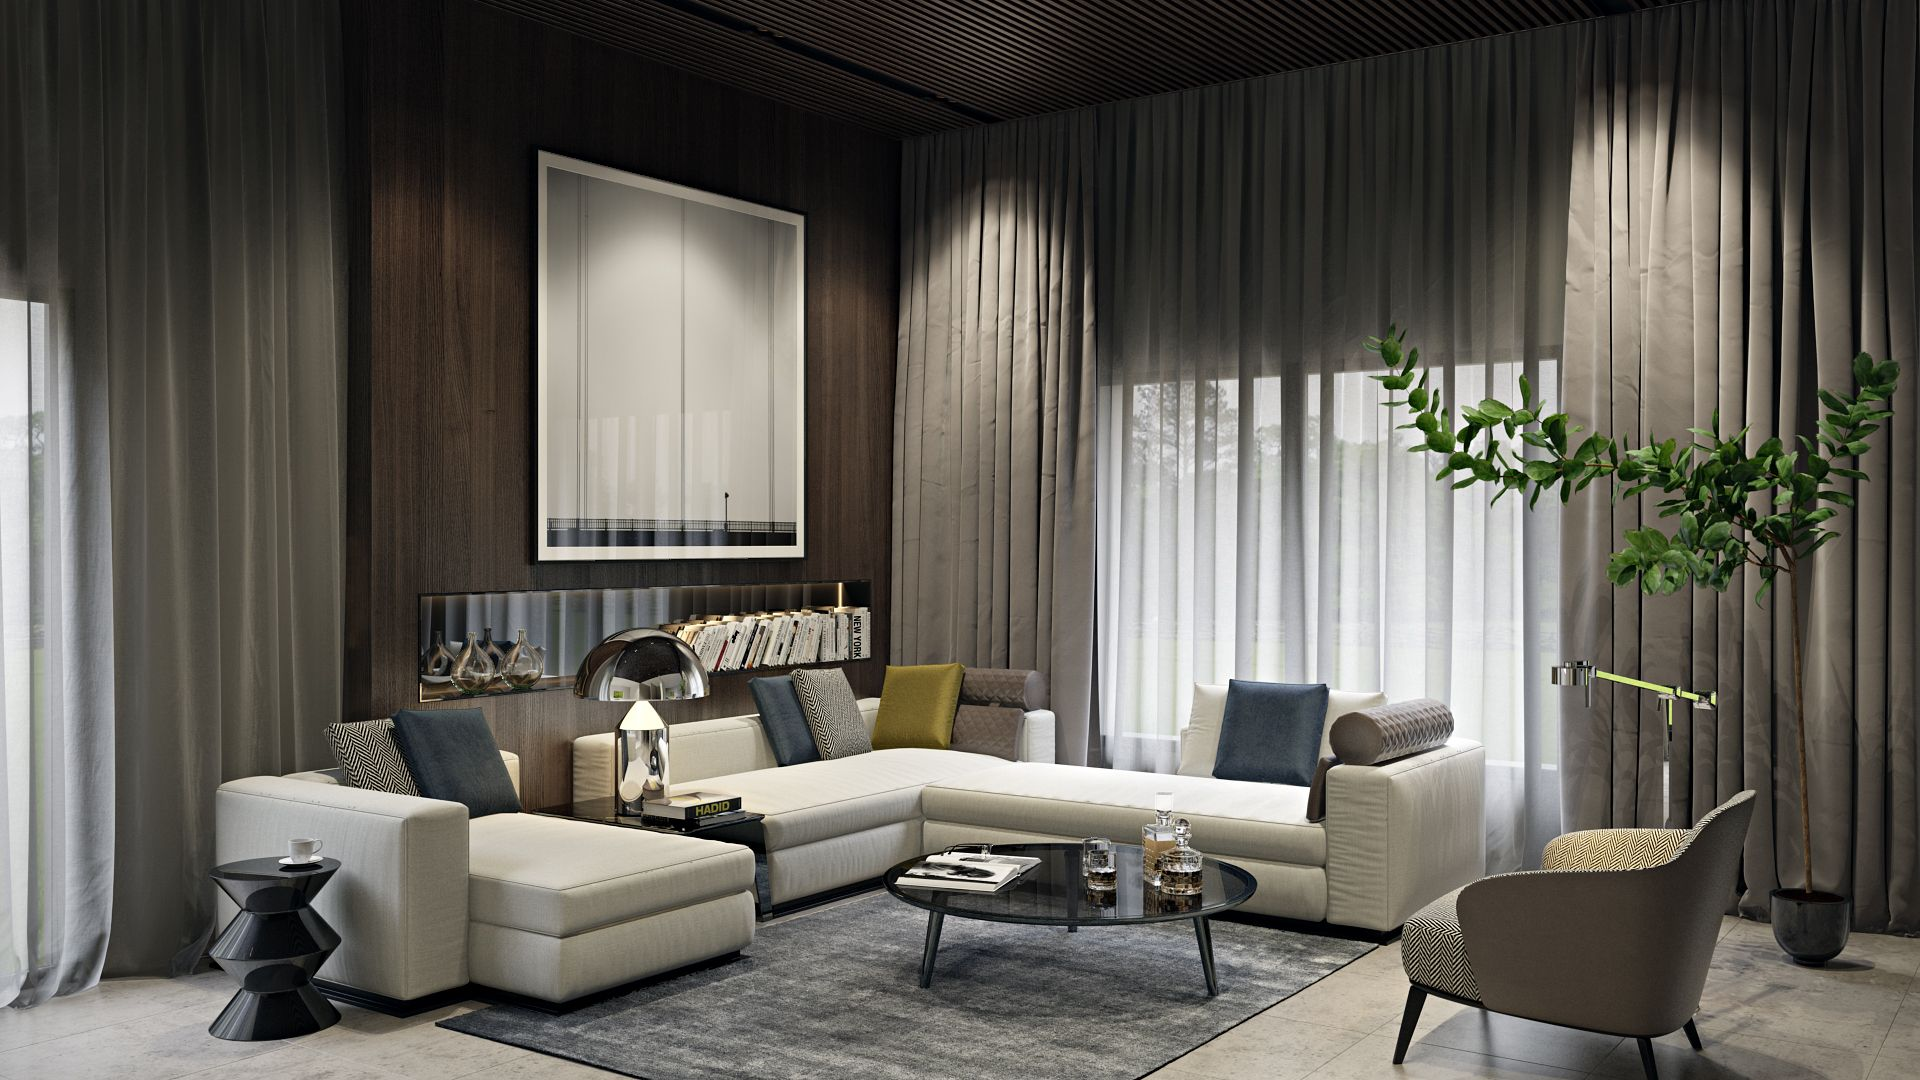 The effectiveness of this luxurious living room design depends on many colors and textures. 3D renderings help creating flawless presentations of your #design projects – learn more at archicgi.com